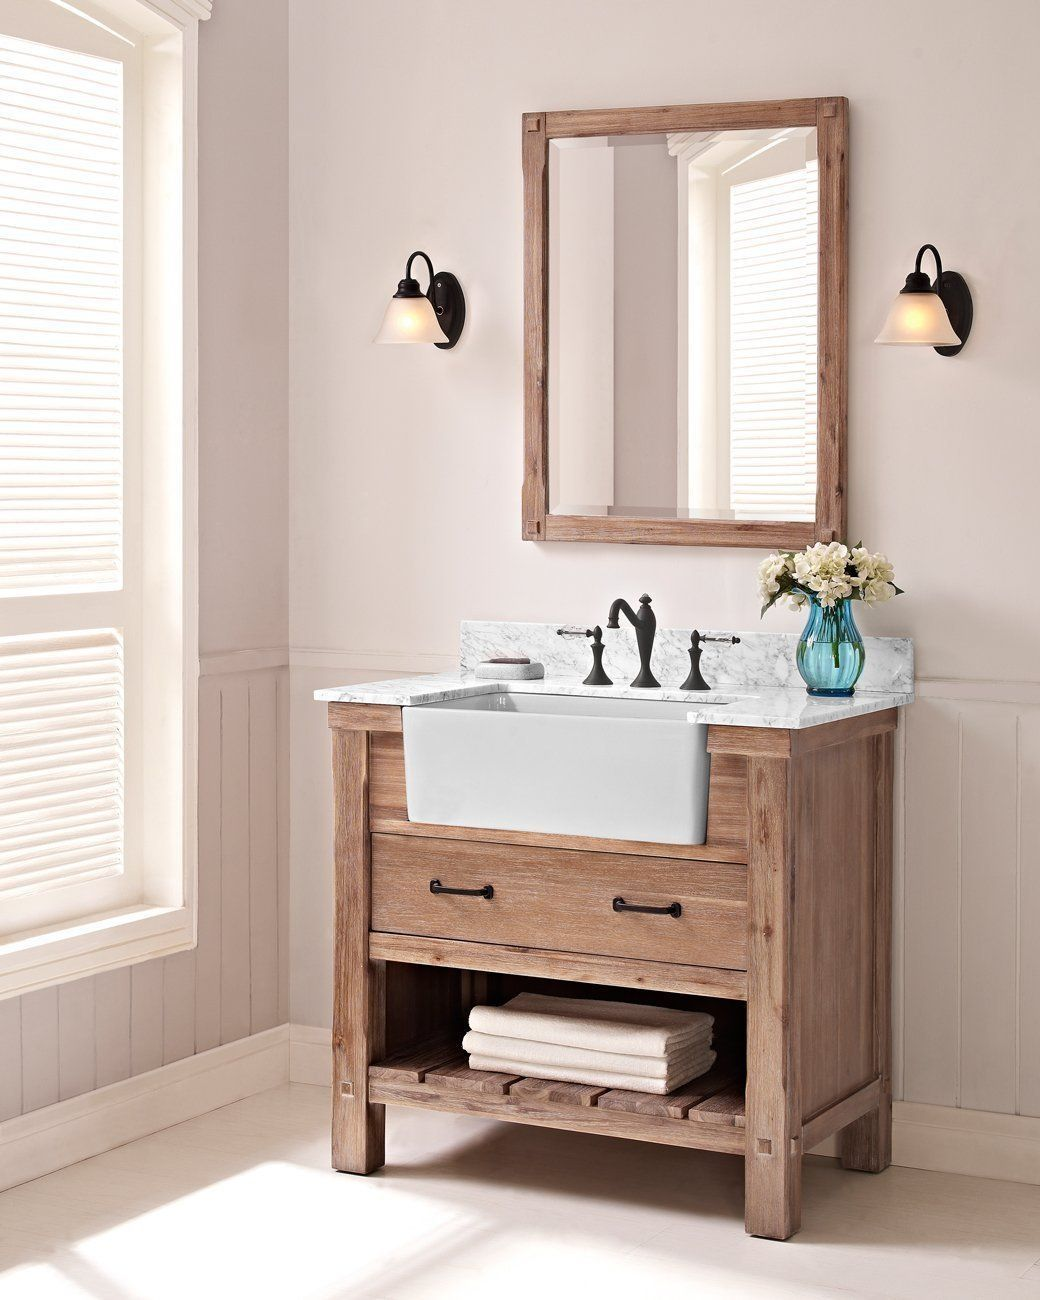 36 Bathroom Vanity Gray: 50 Gorgeous Small Bathroom Vanities Design Ideas